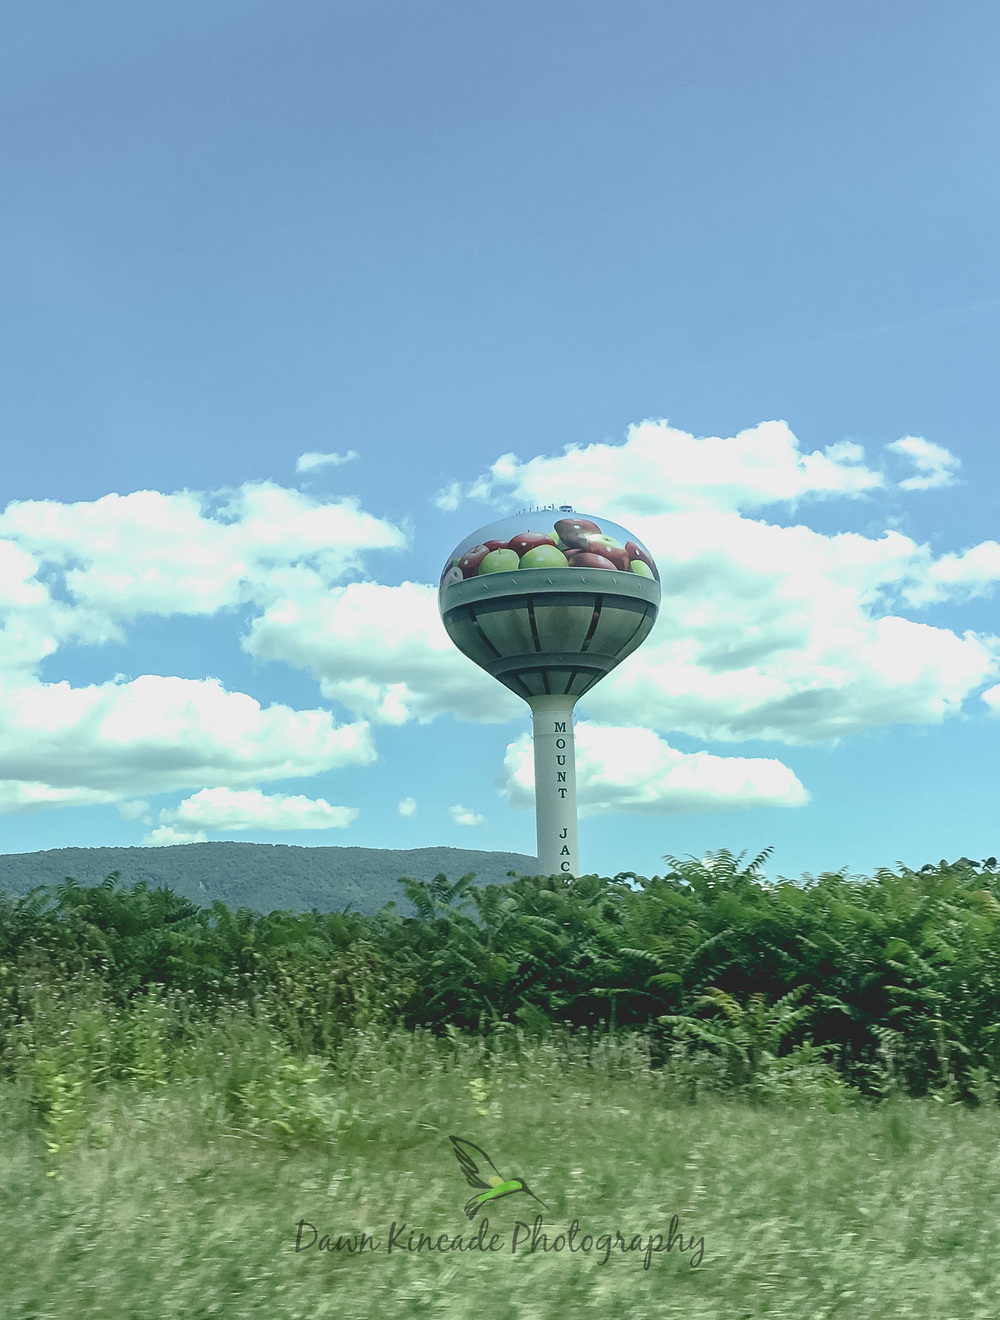 One of the many places along Interstate 81 where apples are a big Fall crop.